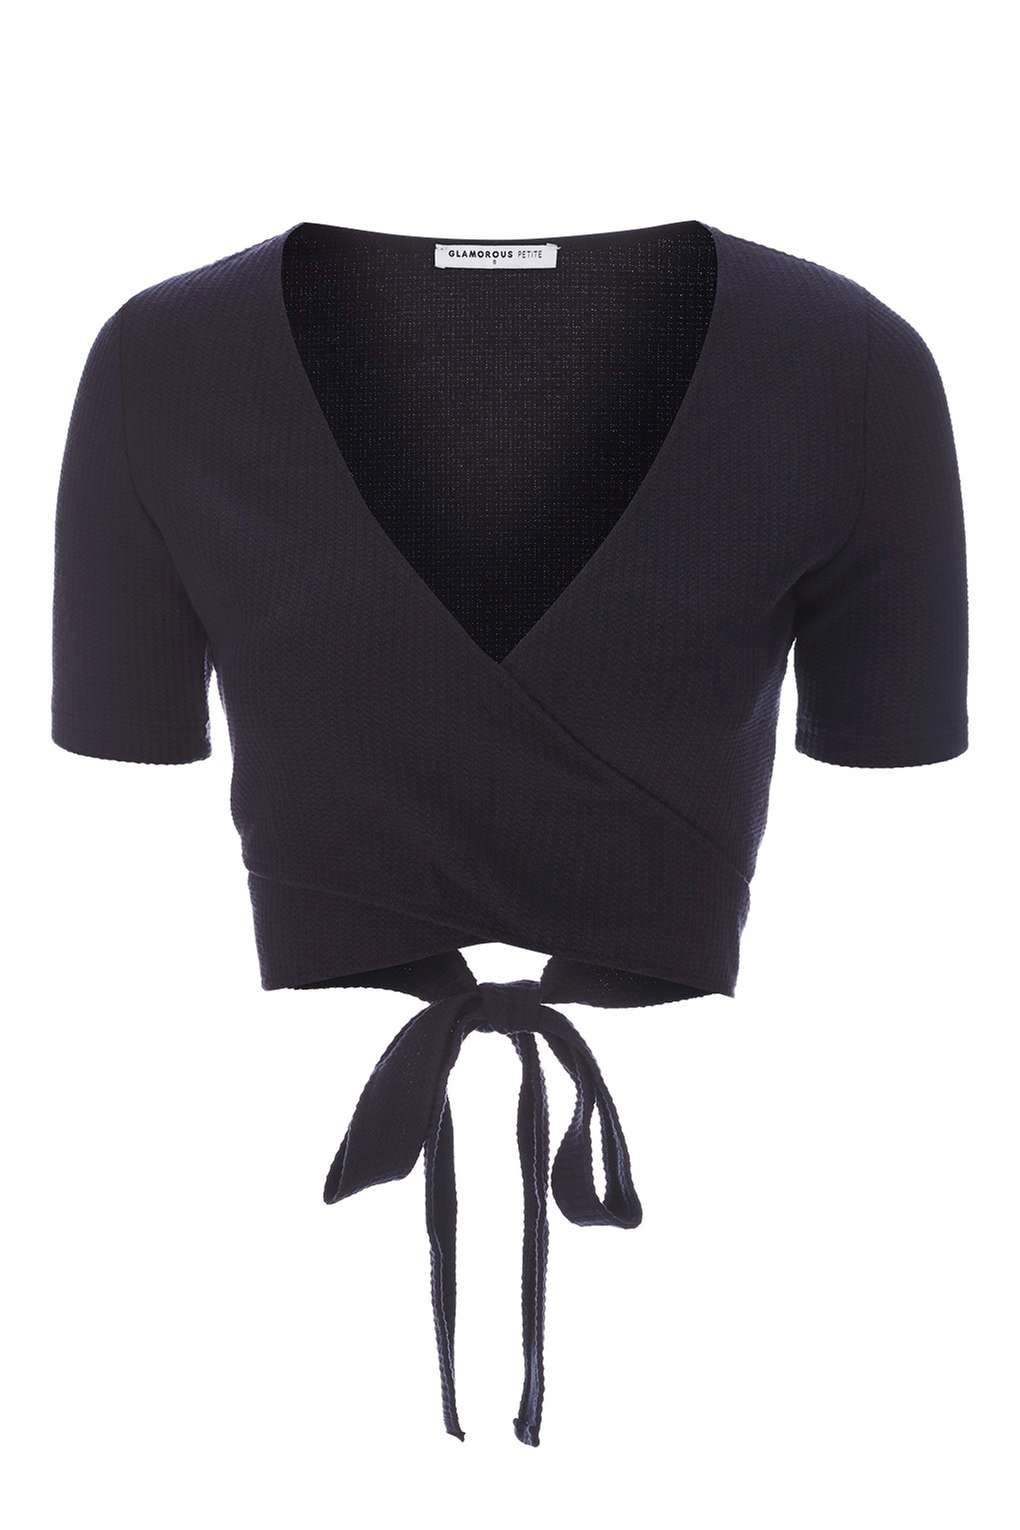 **Navy Wrap Top by Glamorous Petites - Tops - Clothing - Topshop Europe